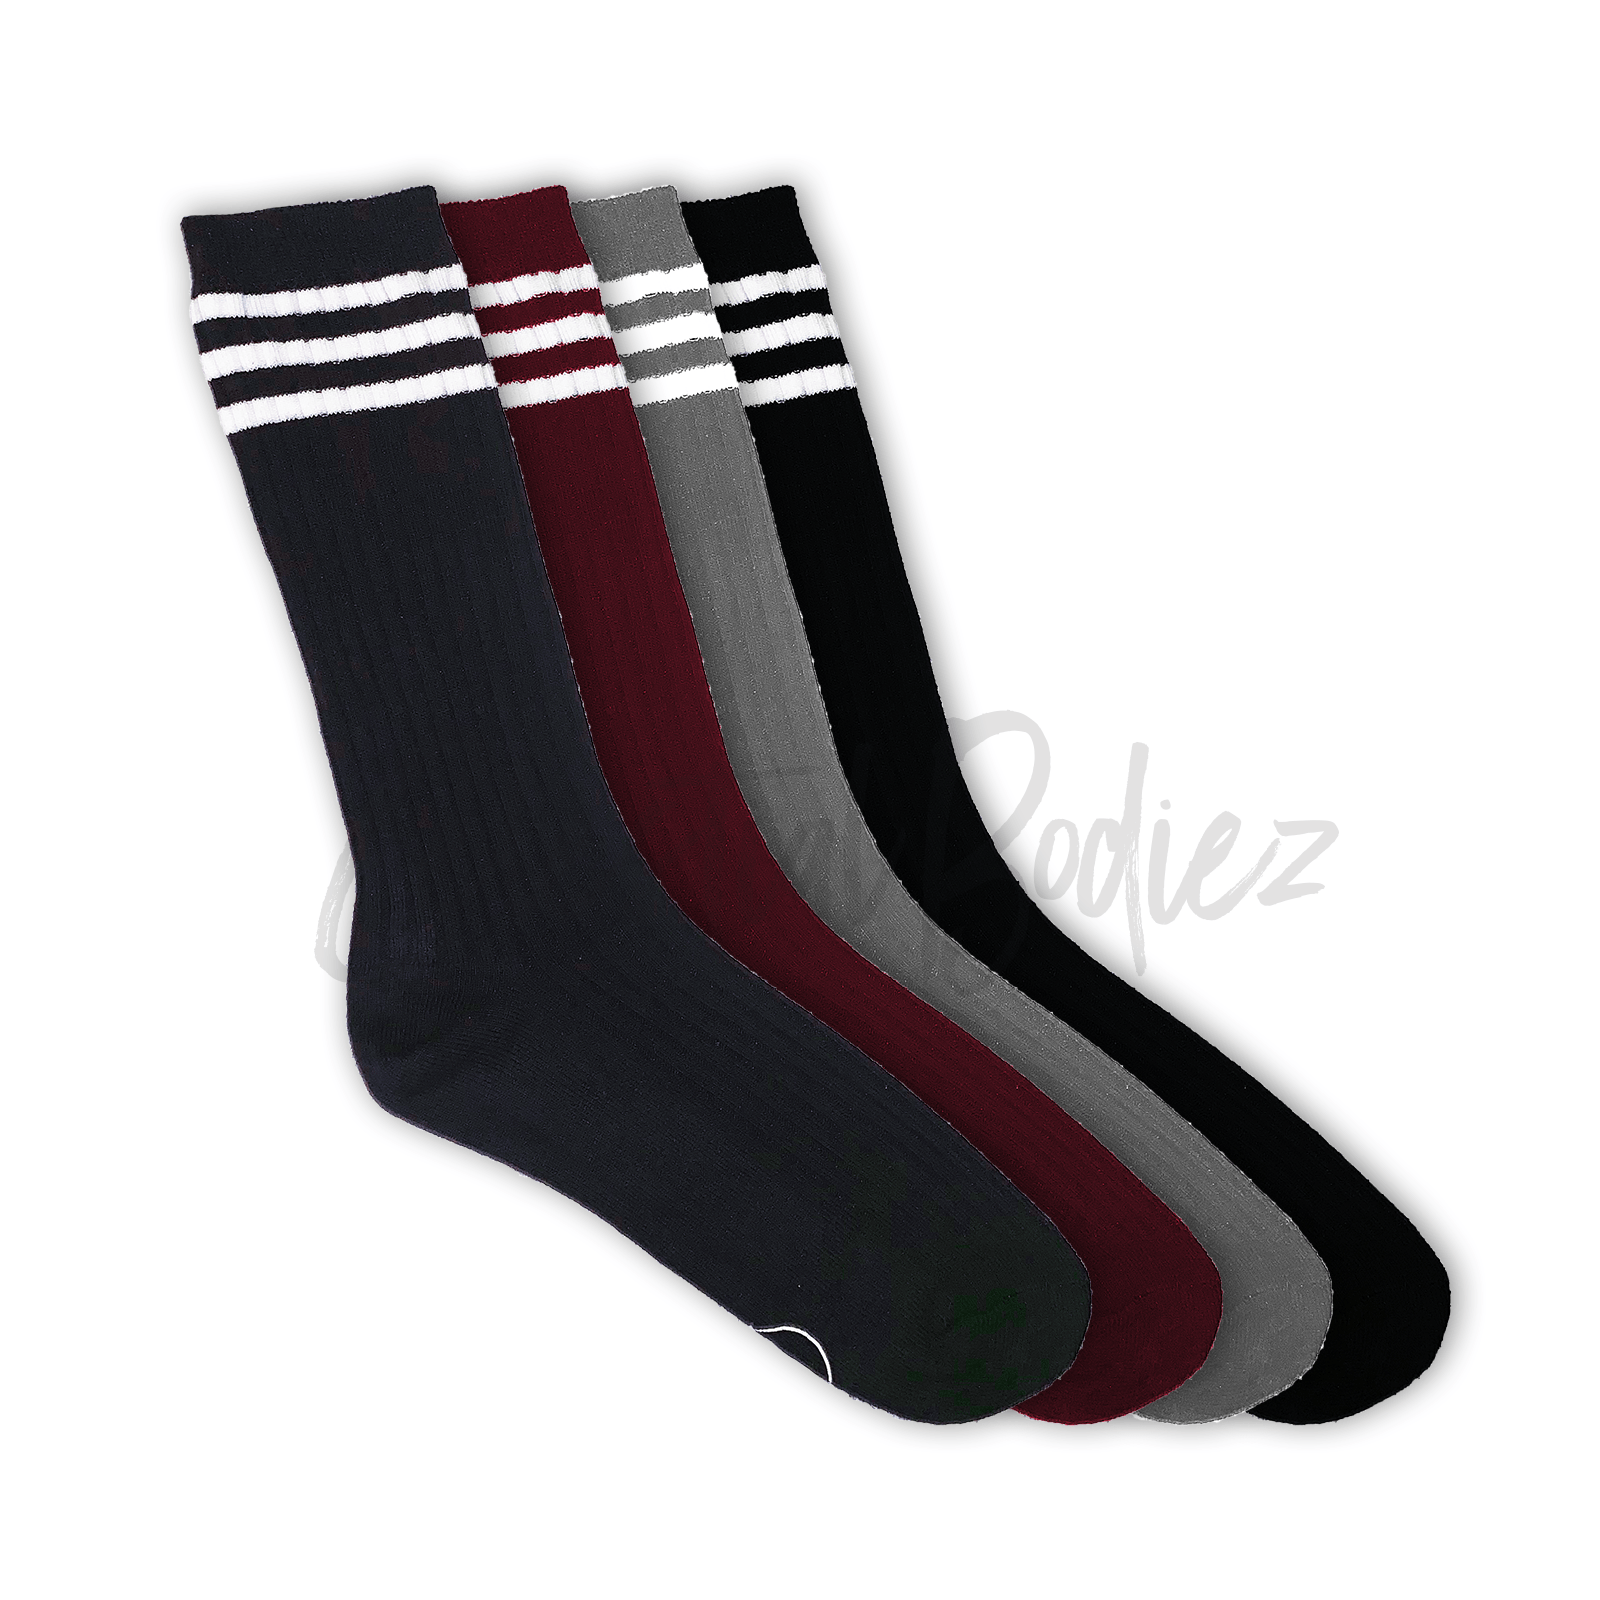 Retro Striped Tube socks